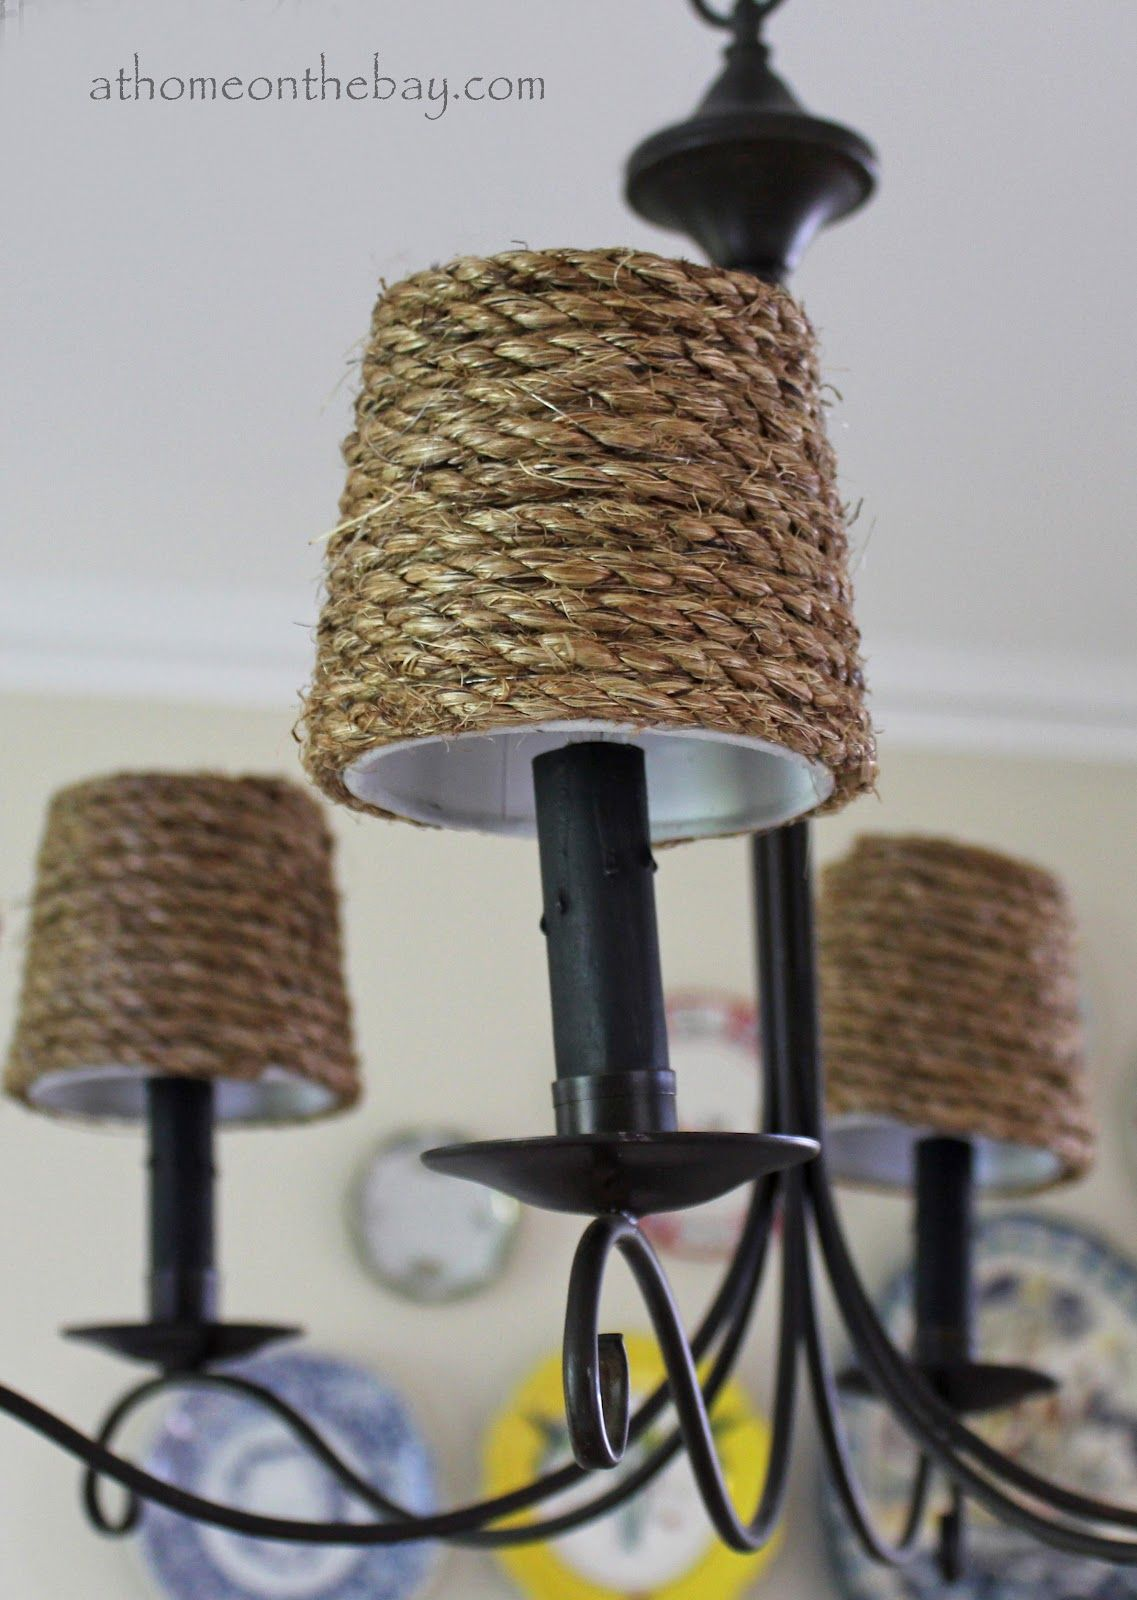 At home on the bay diy pottery barn inspired chandelier shades i at home on the bay diy pottery barn inspired chandelier shades aloadofball Images